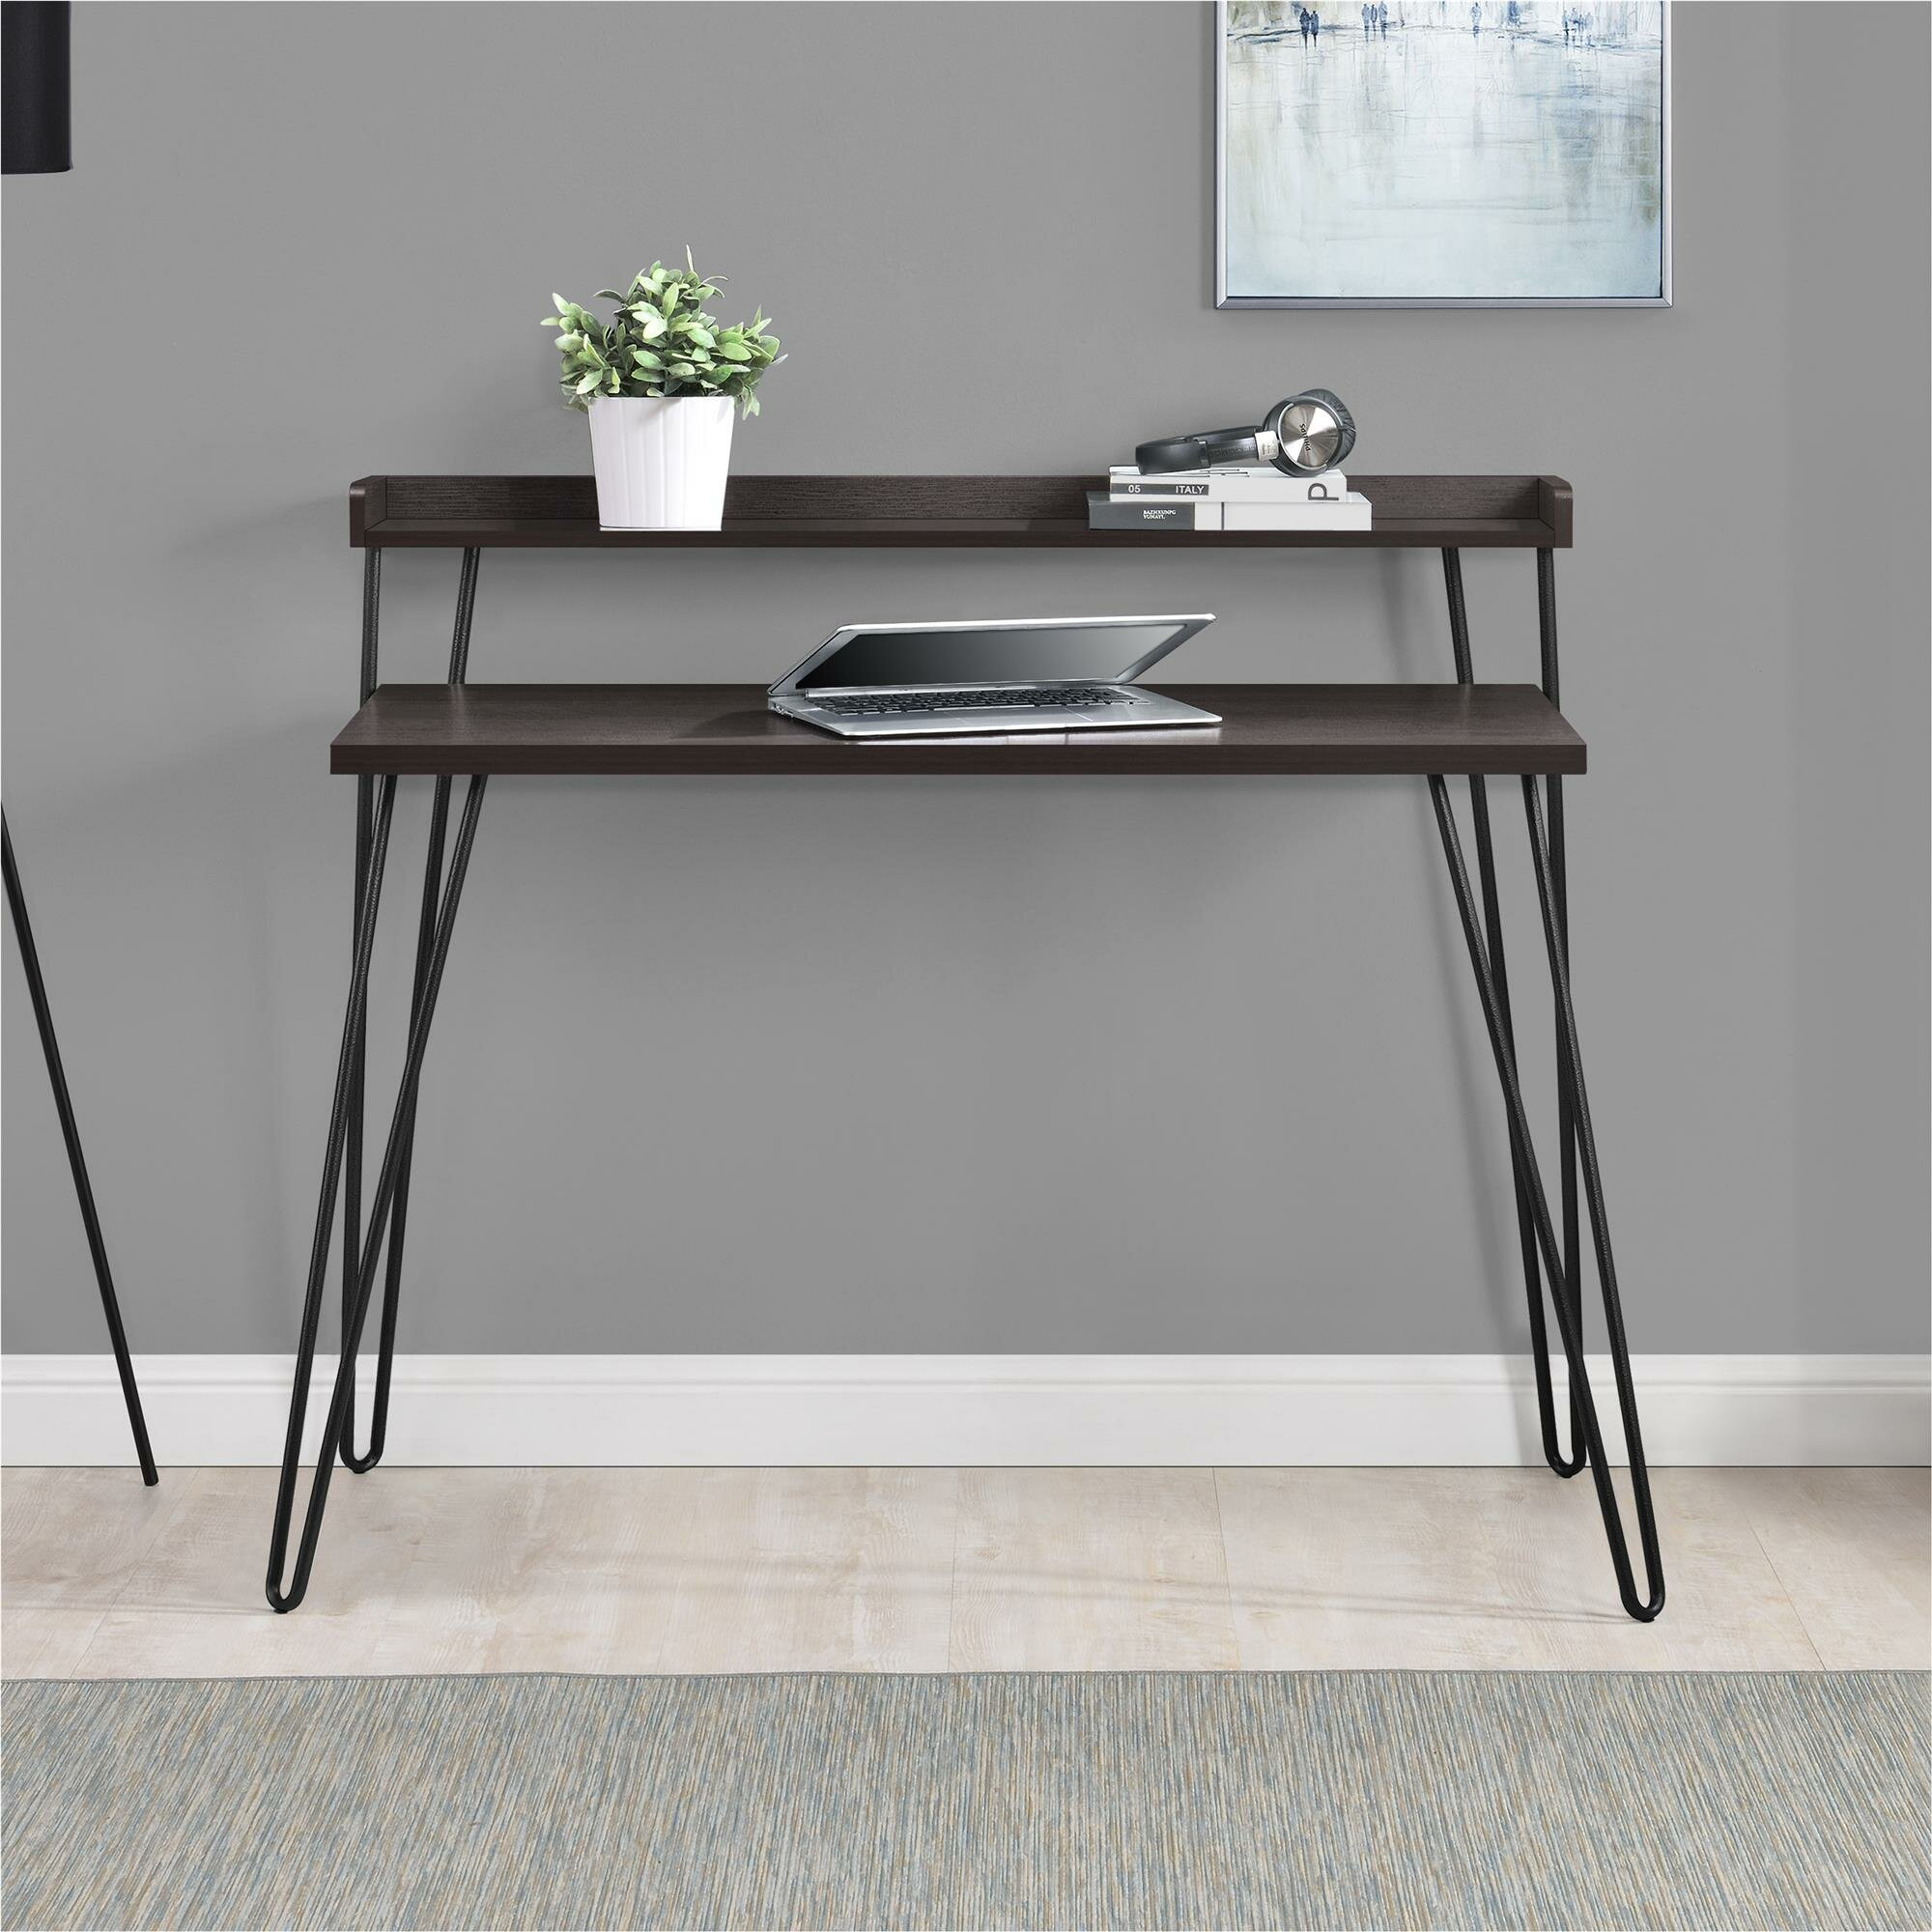 itm owen altra student gray furniture writing ebay multiple desk colors